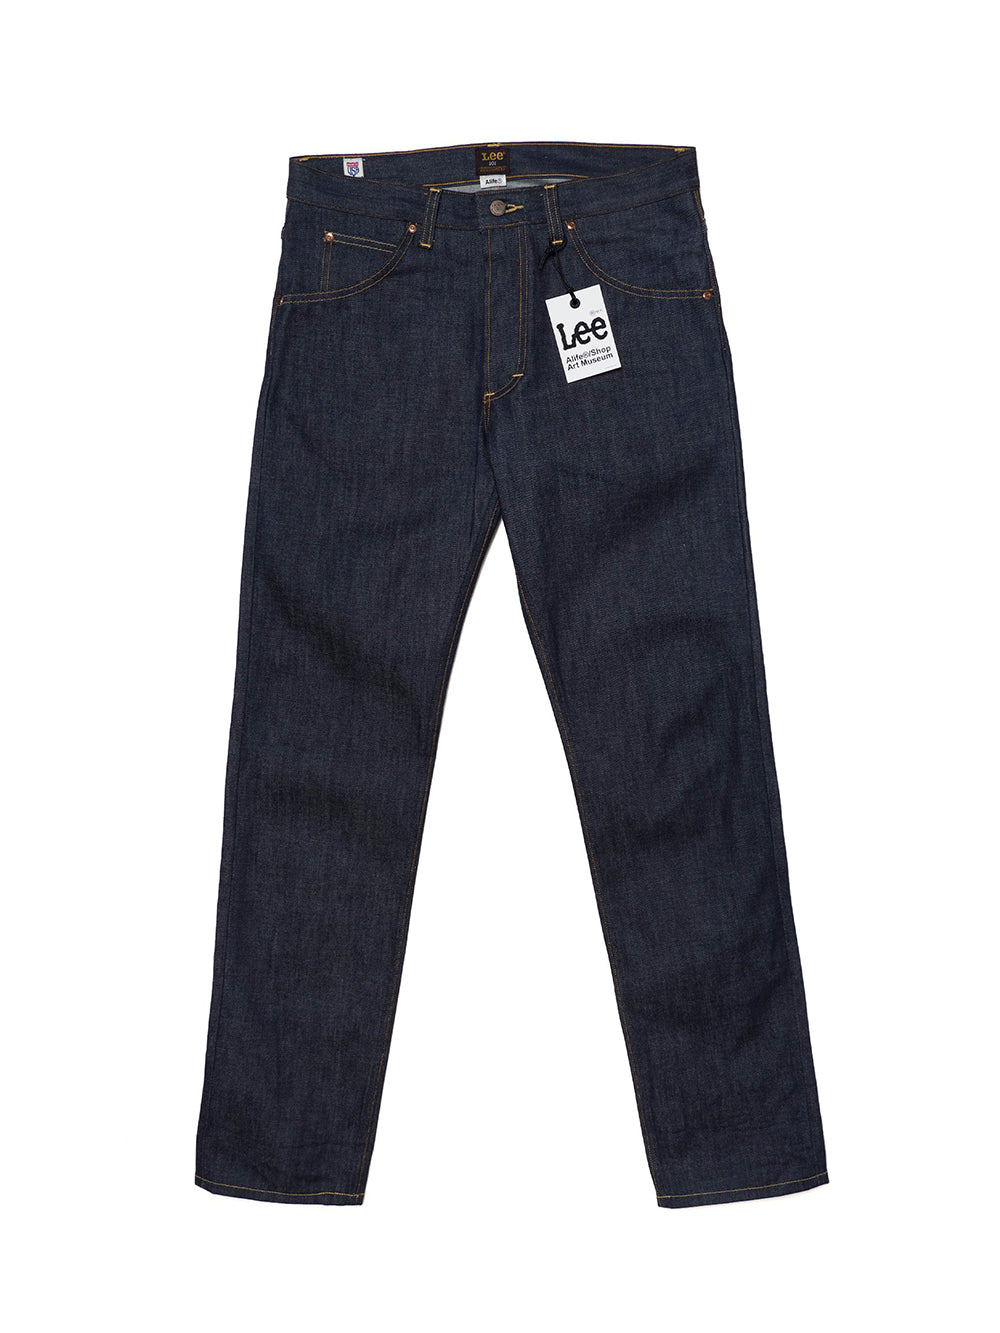 Alife/Lee 101Z Regular Fit Jean in Rigid front view